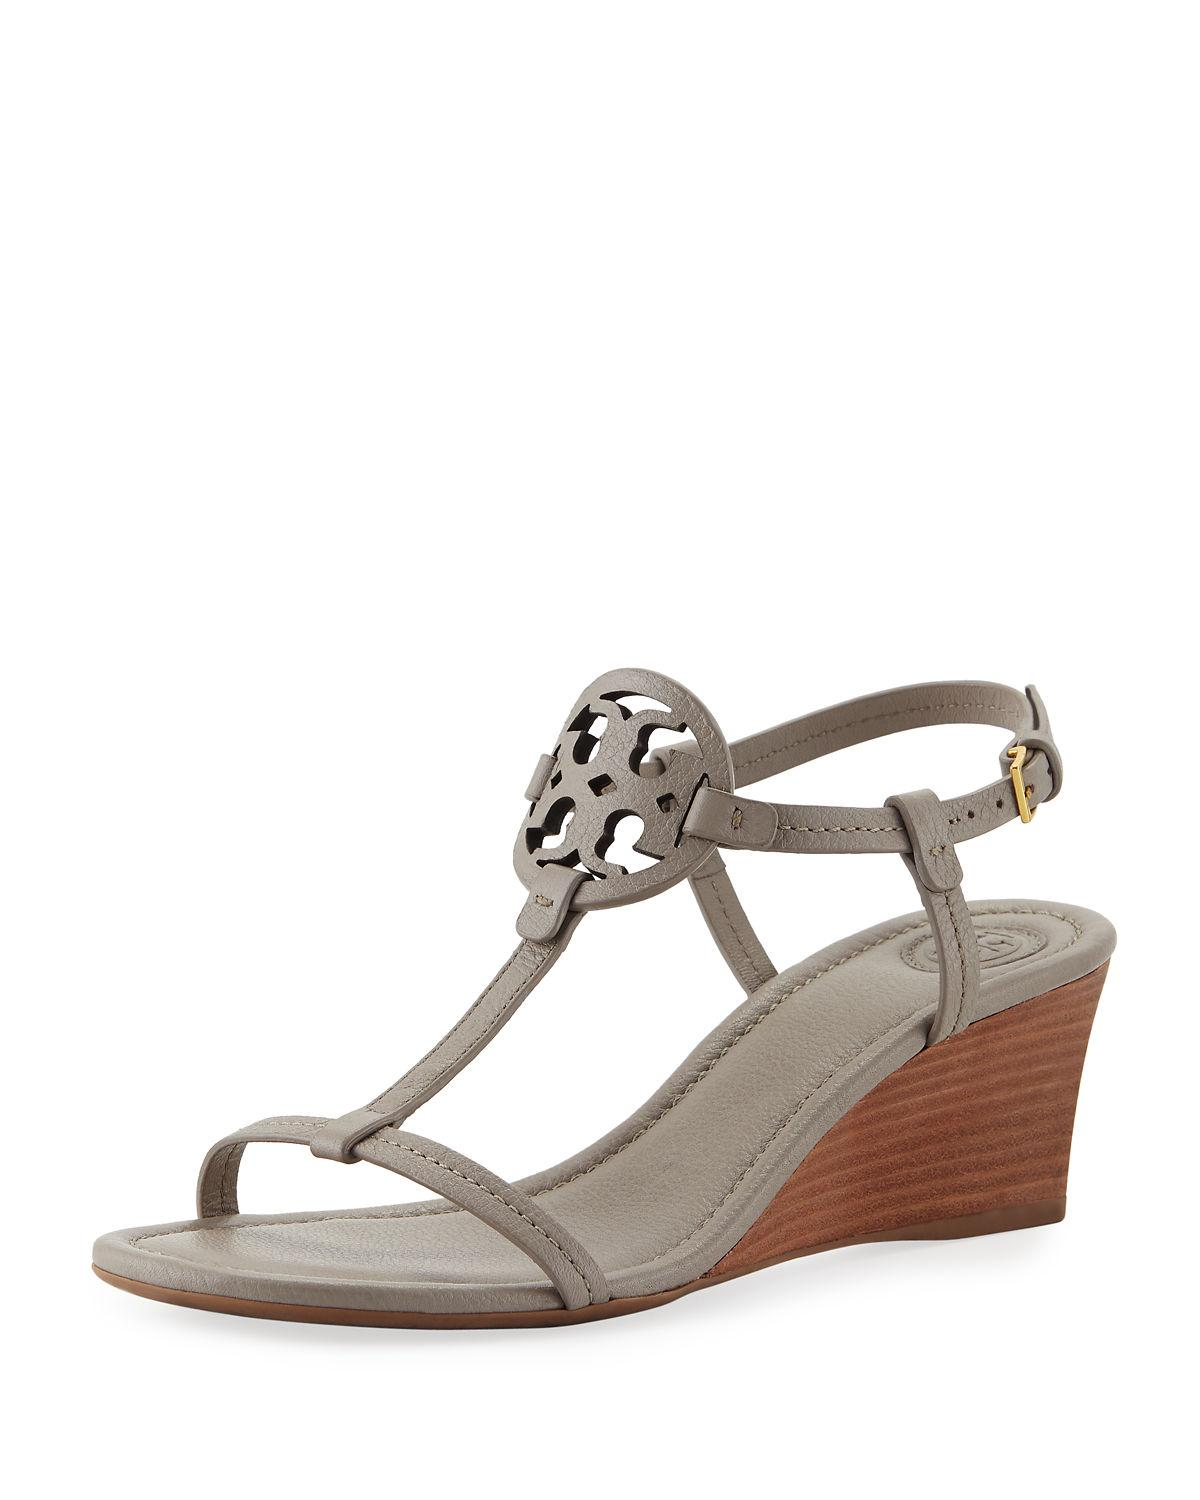 e77226fe64 Tory Burch Miller Sandal Wedges, Tumbled Leather In Gray | ModeSens